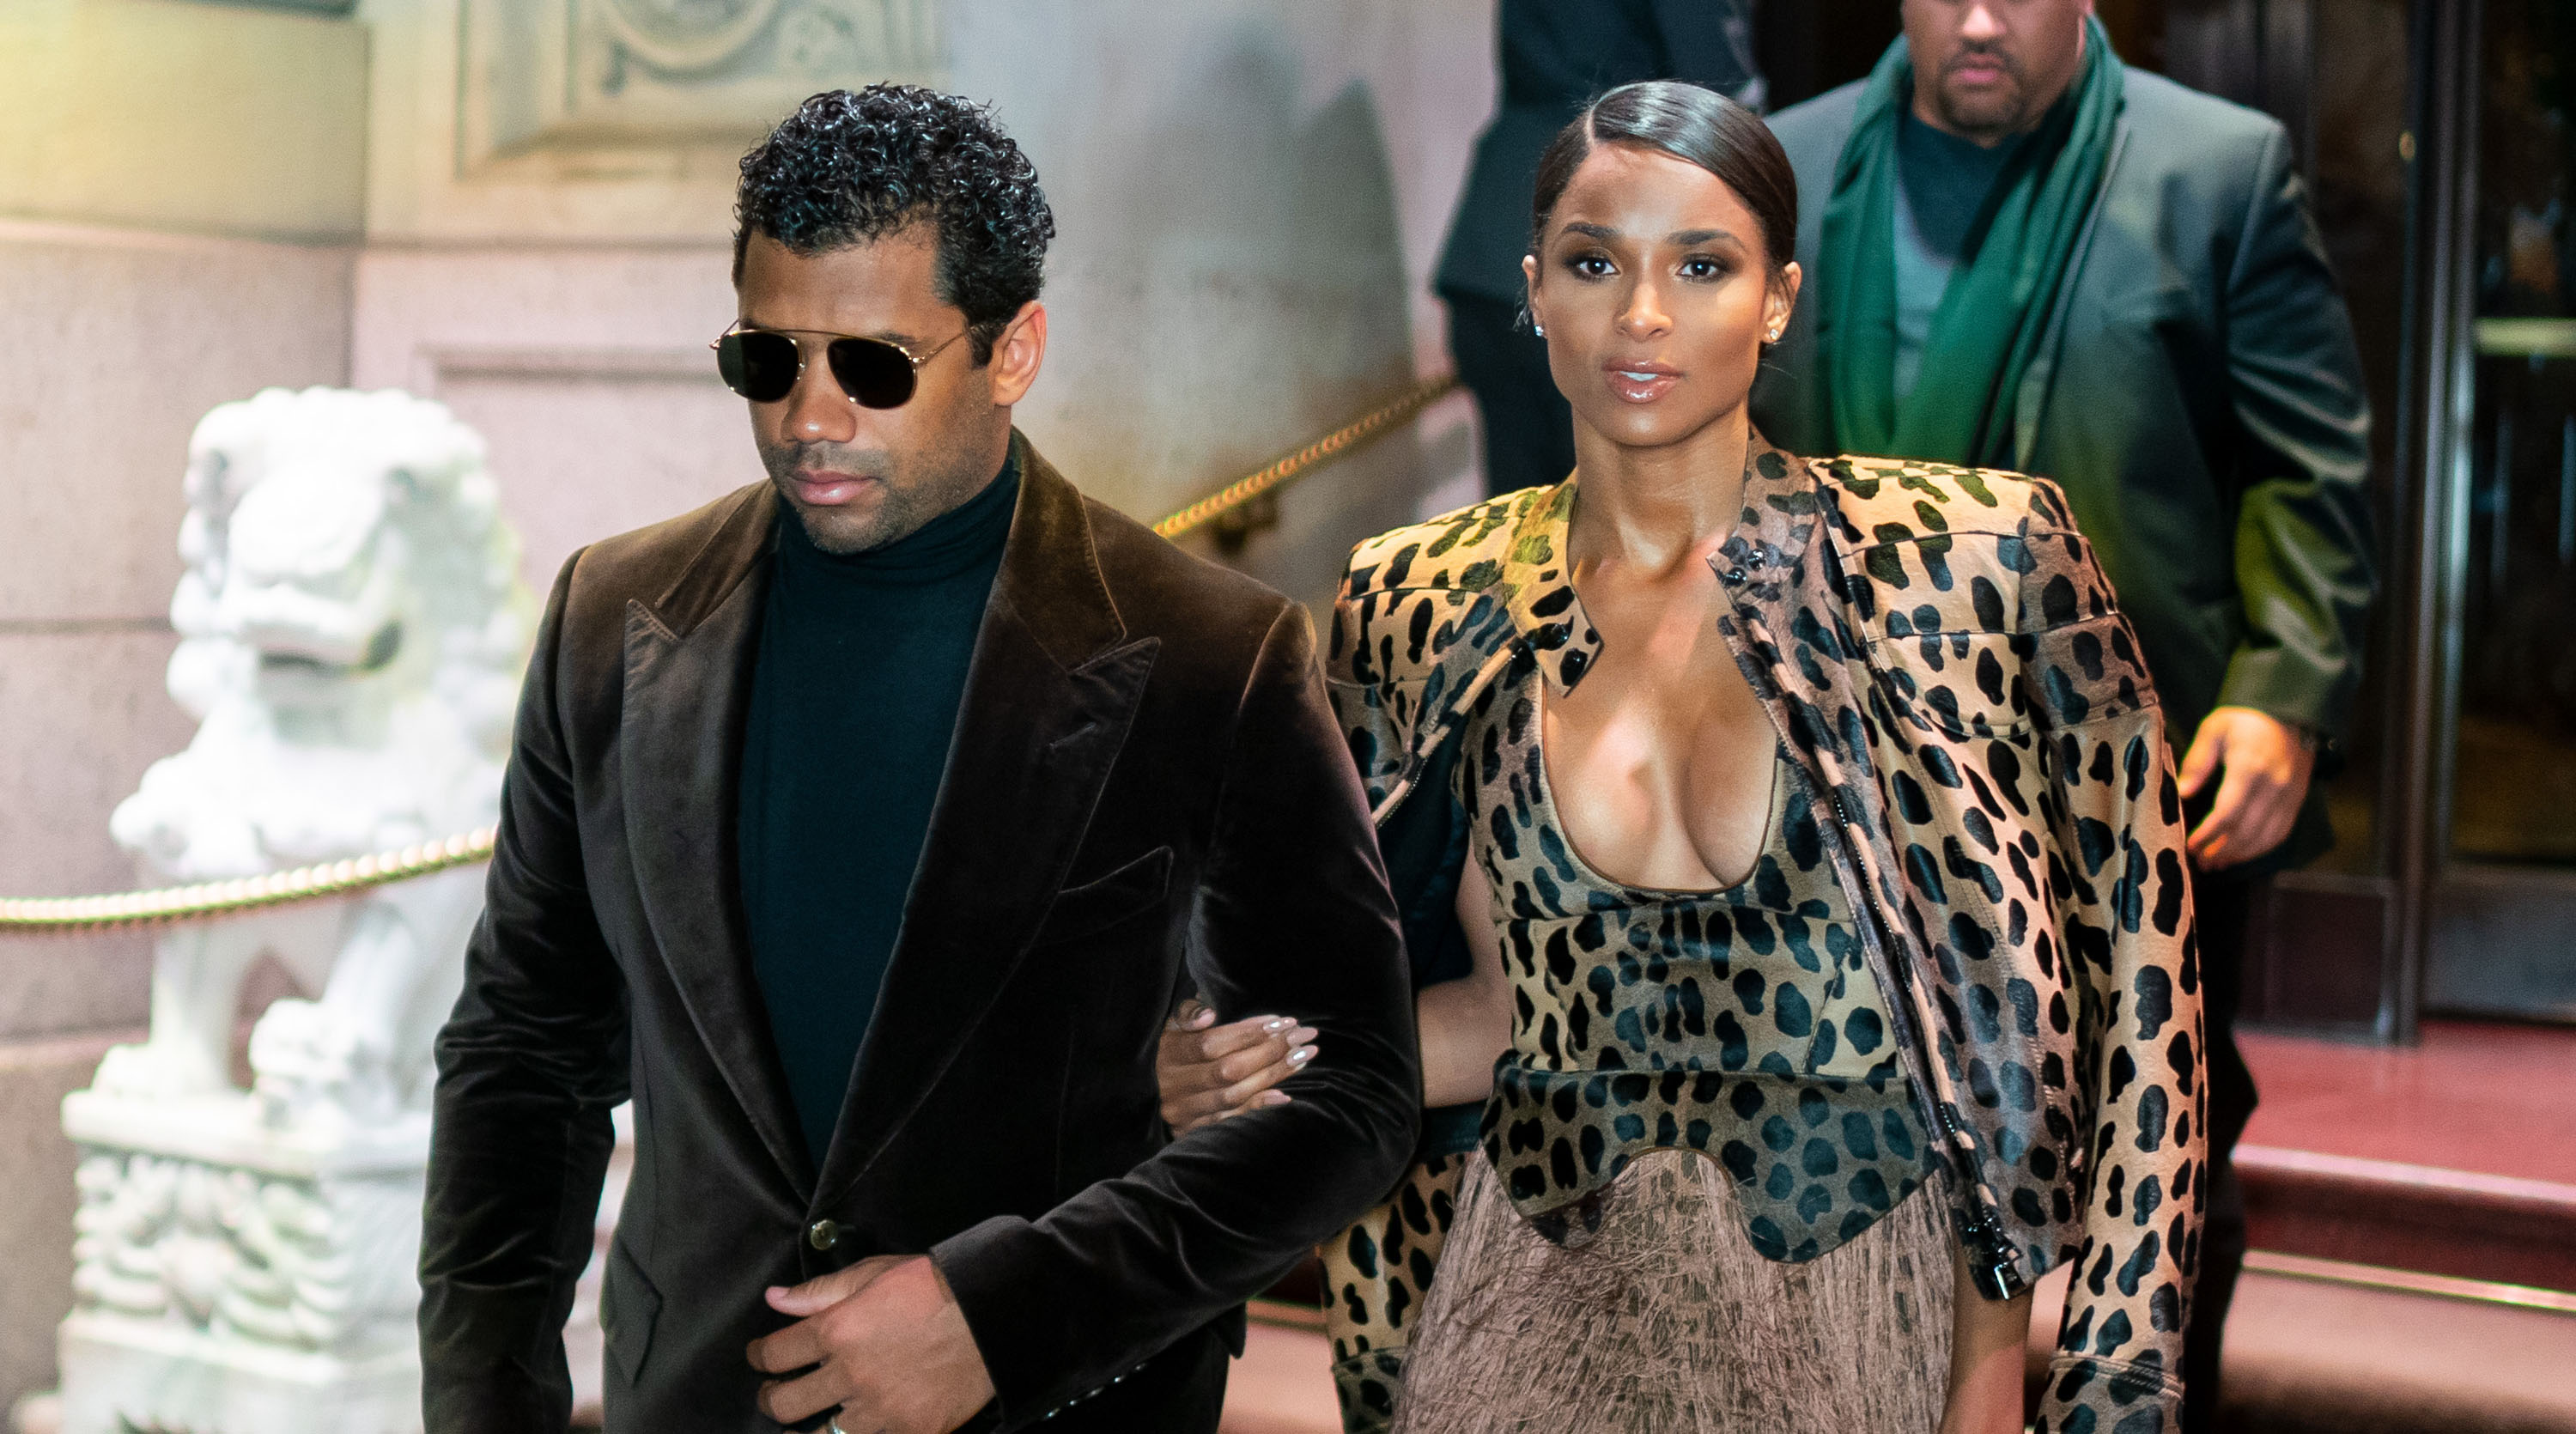 Russell Wilson announces contract in bed with Ciara